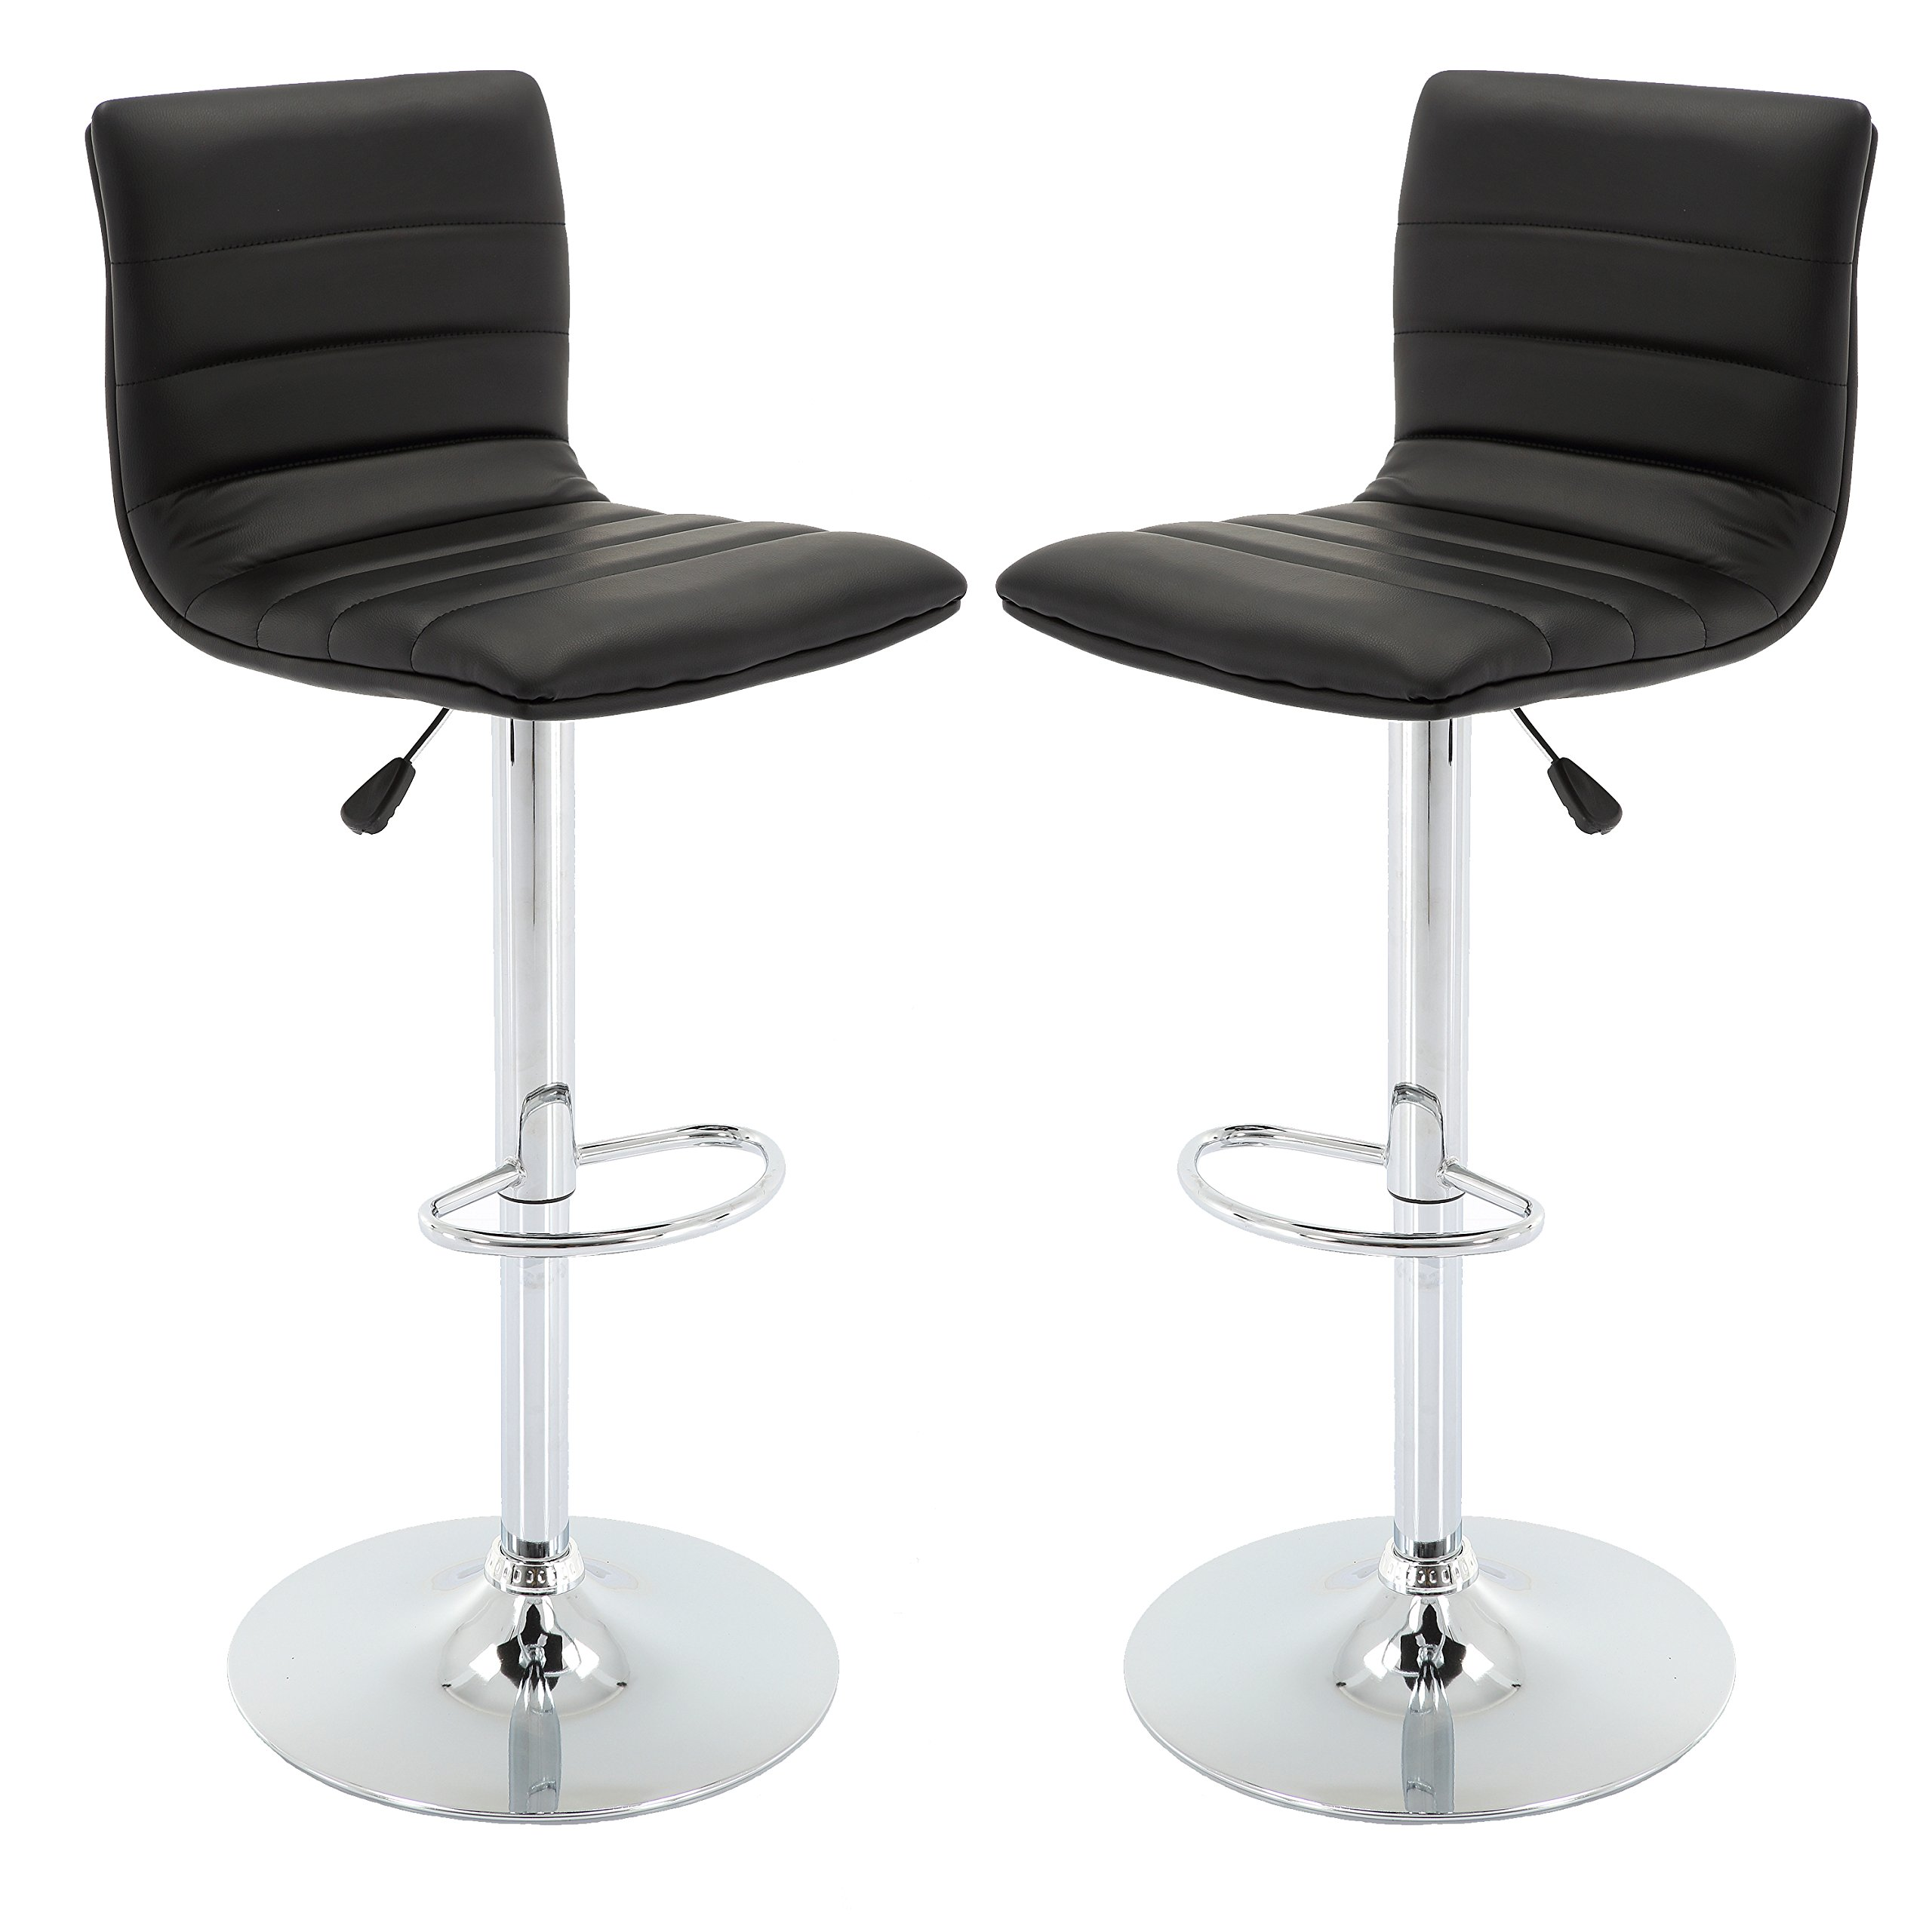 Vogue Furniture Direct Adjustable Leather Barstool, Black-VF1581024 (Set of 2)